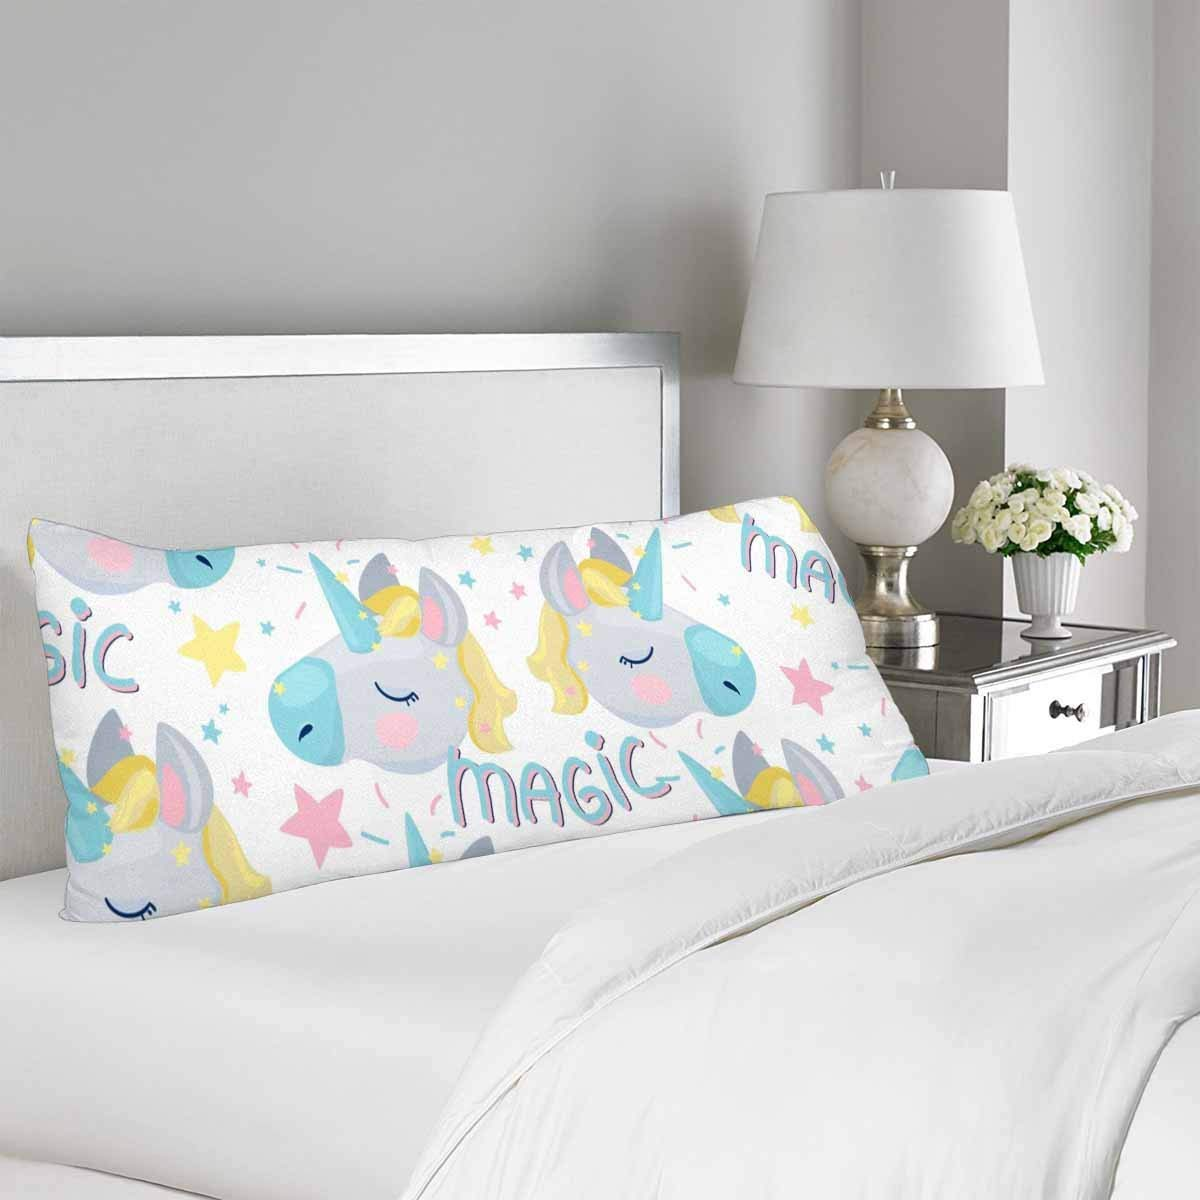 GCKG Cute Magic Unicorn Body Pillow Covers Pillowcase 20x60 inches, Cartoon Unicorn Body Pillow Case Protector - image 1 de 2